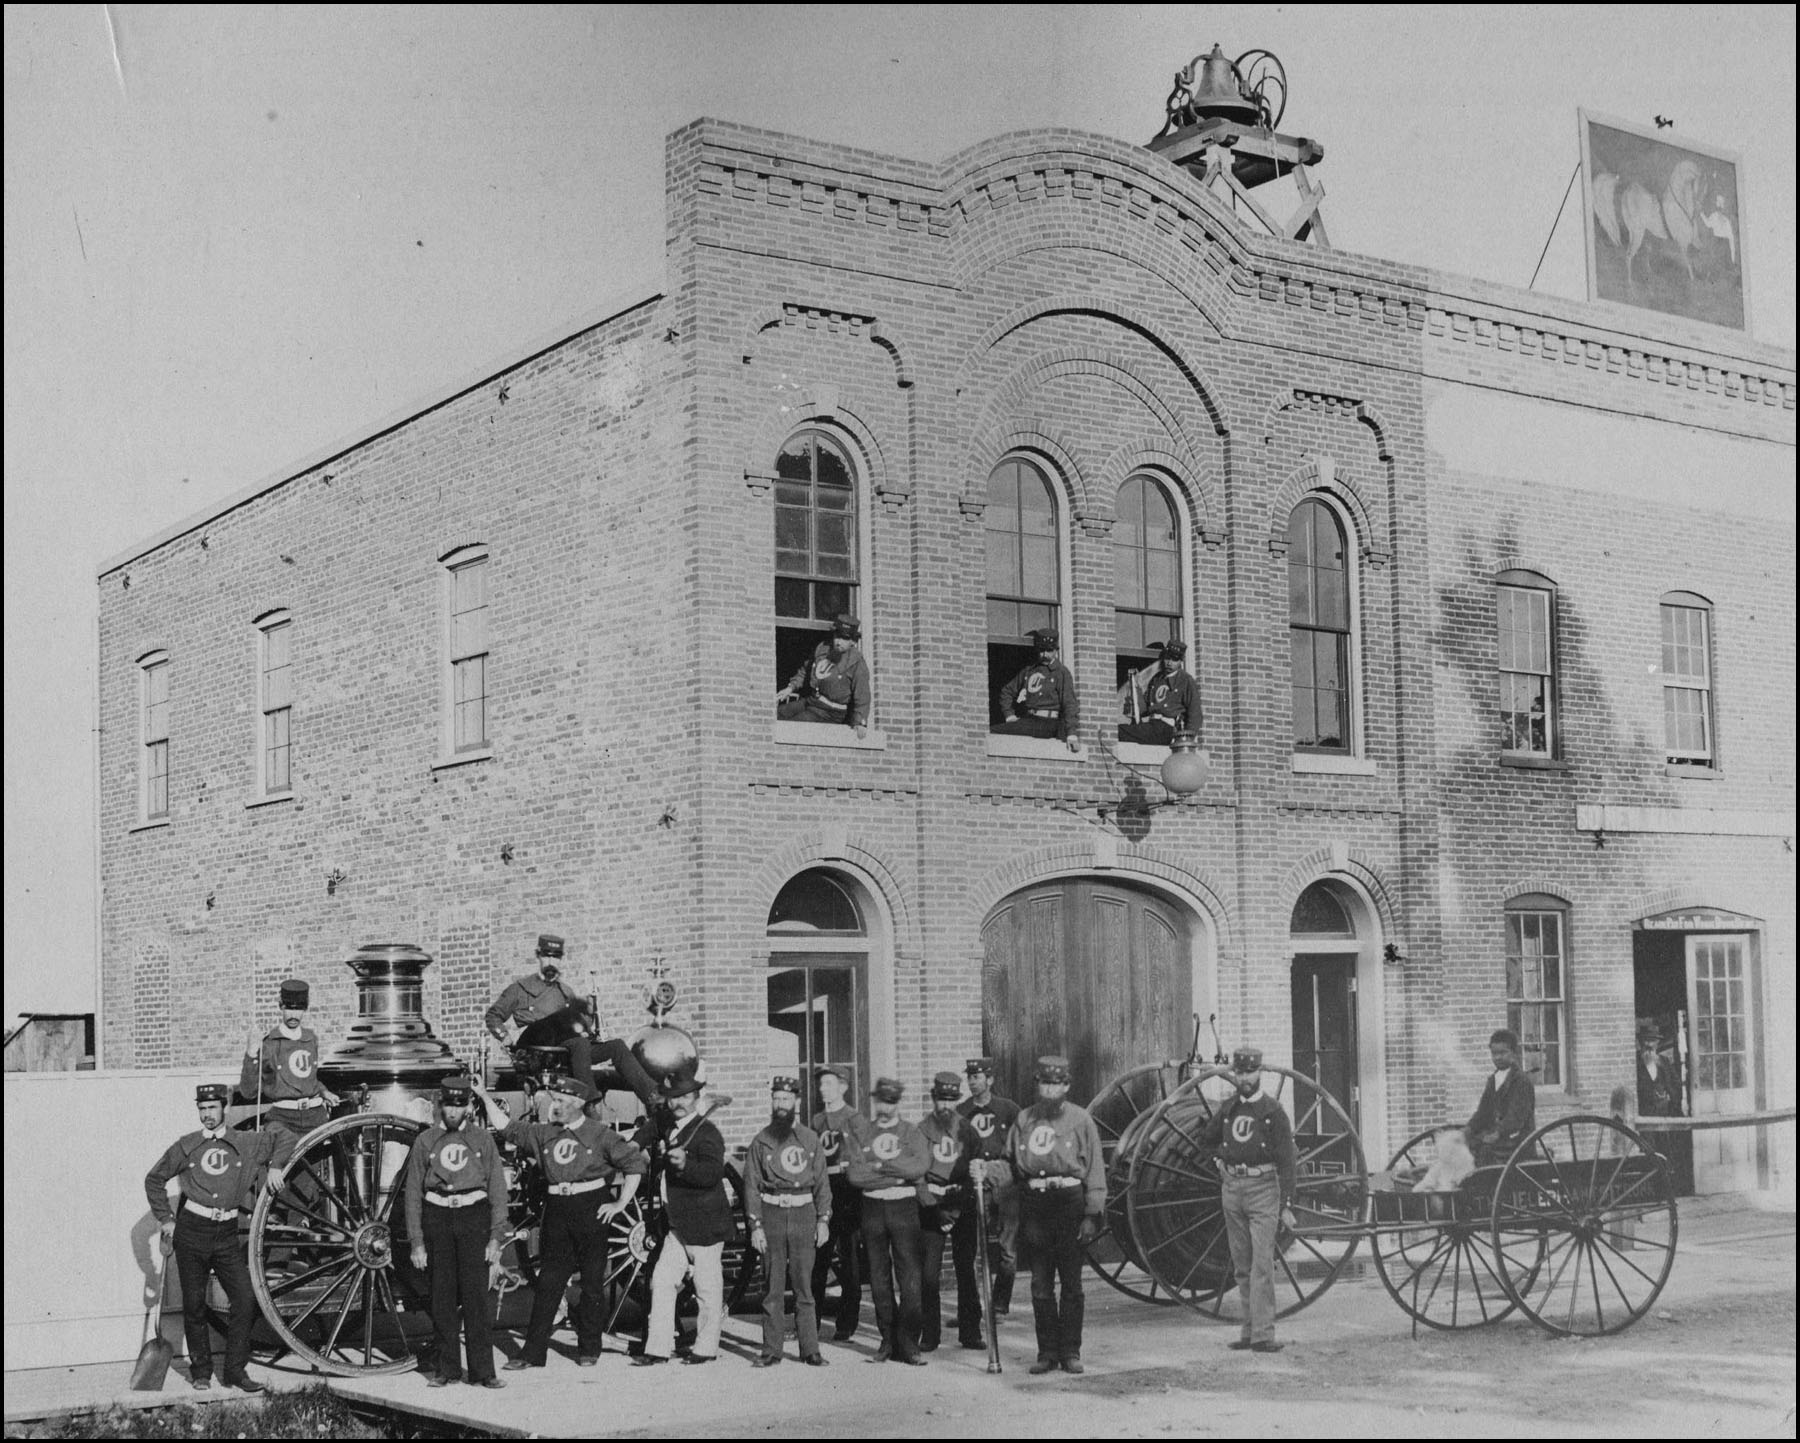 Ypsilanti Firefighters, 1870 image